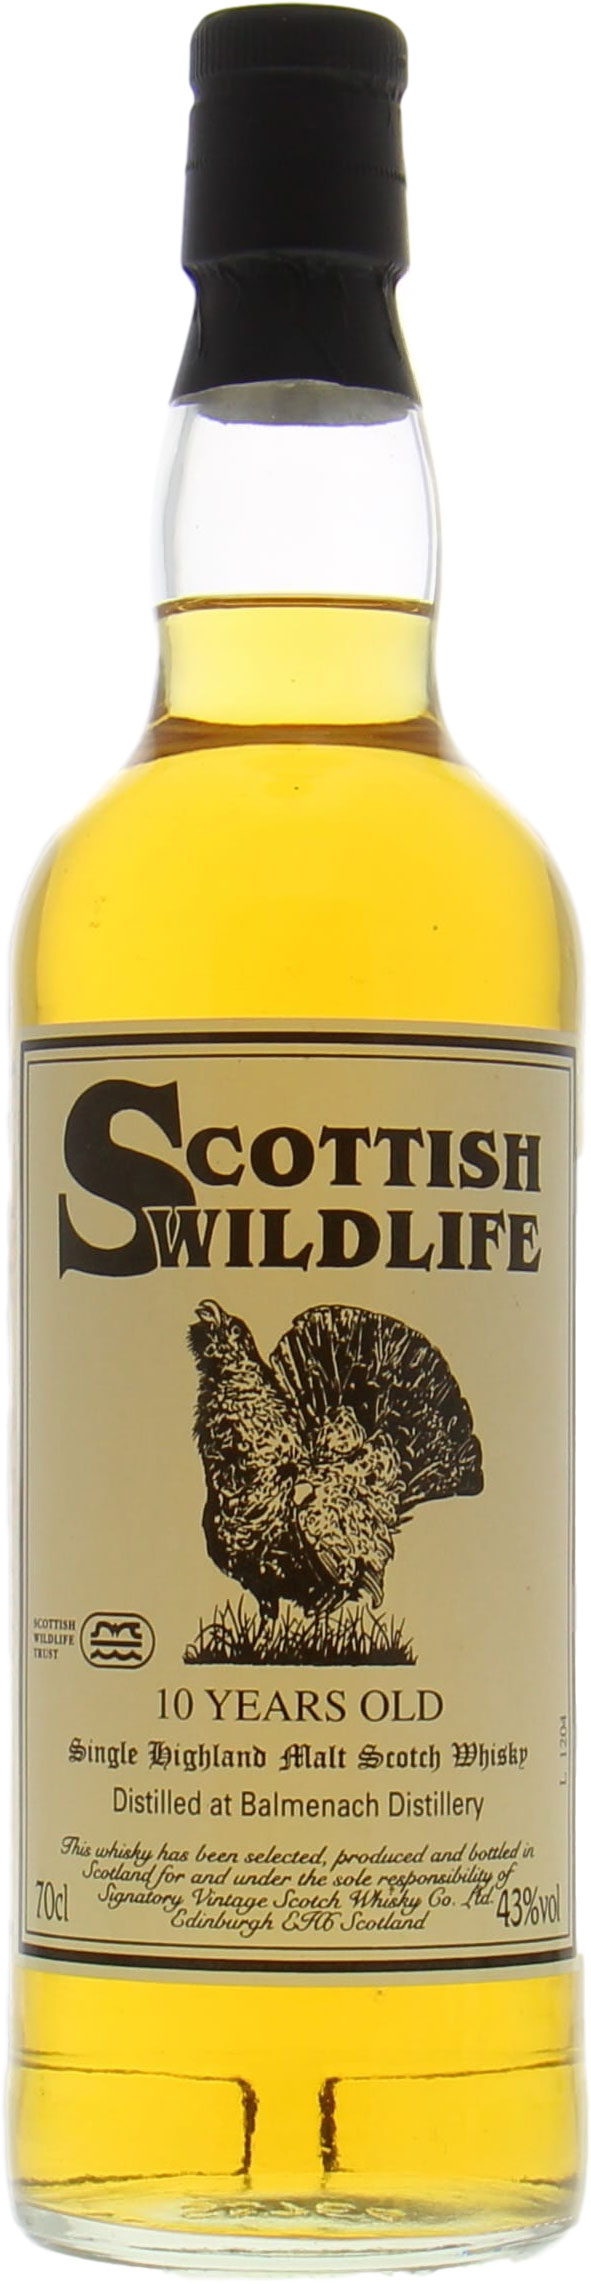 Balmenach - 10 Years Old Signatory Vintage Scottish Wildlife 43%